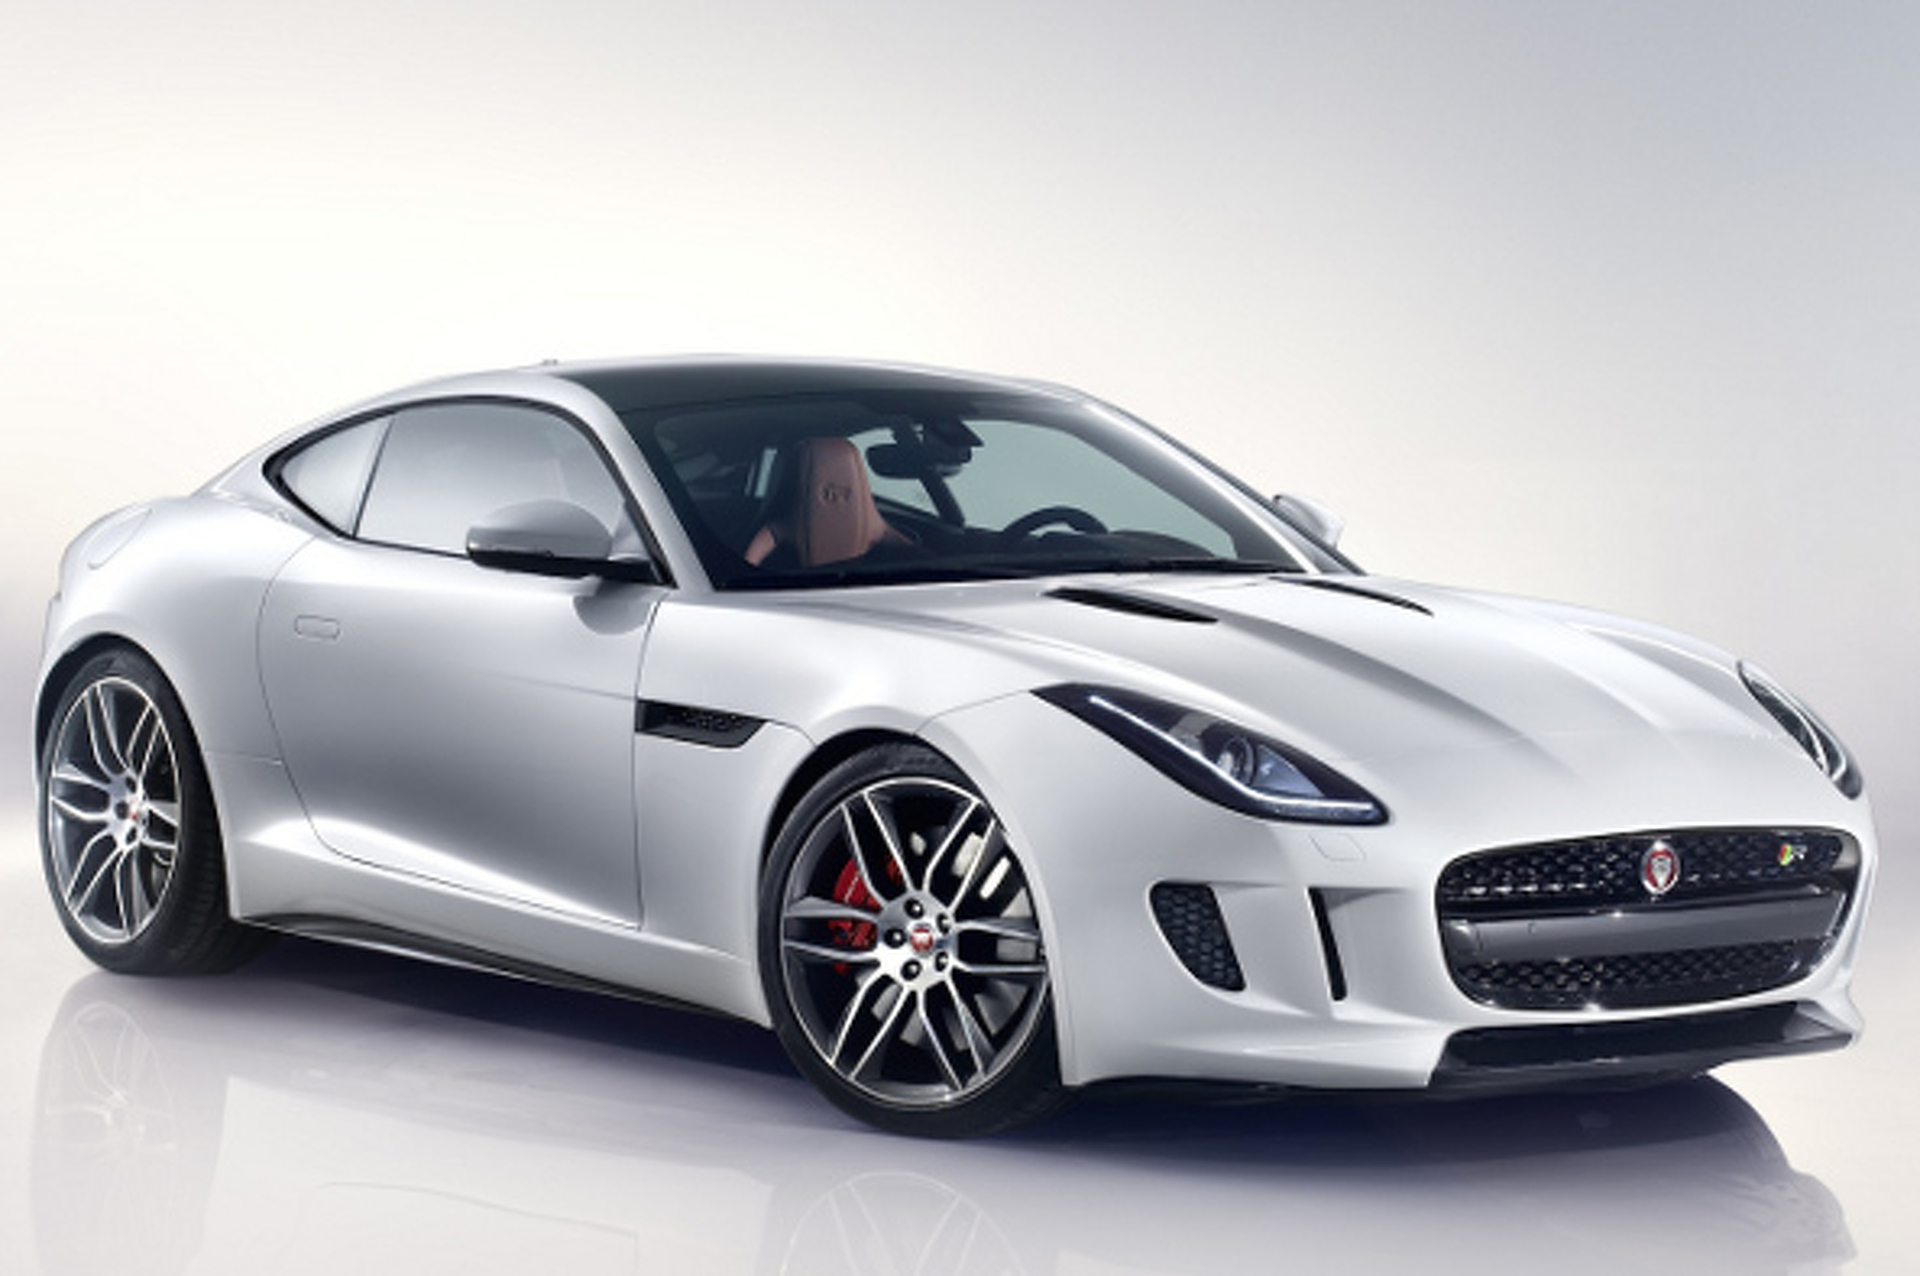 The Jaguar F Type Is Stunning But Do All New Sports Cars Look The